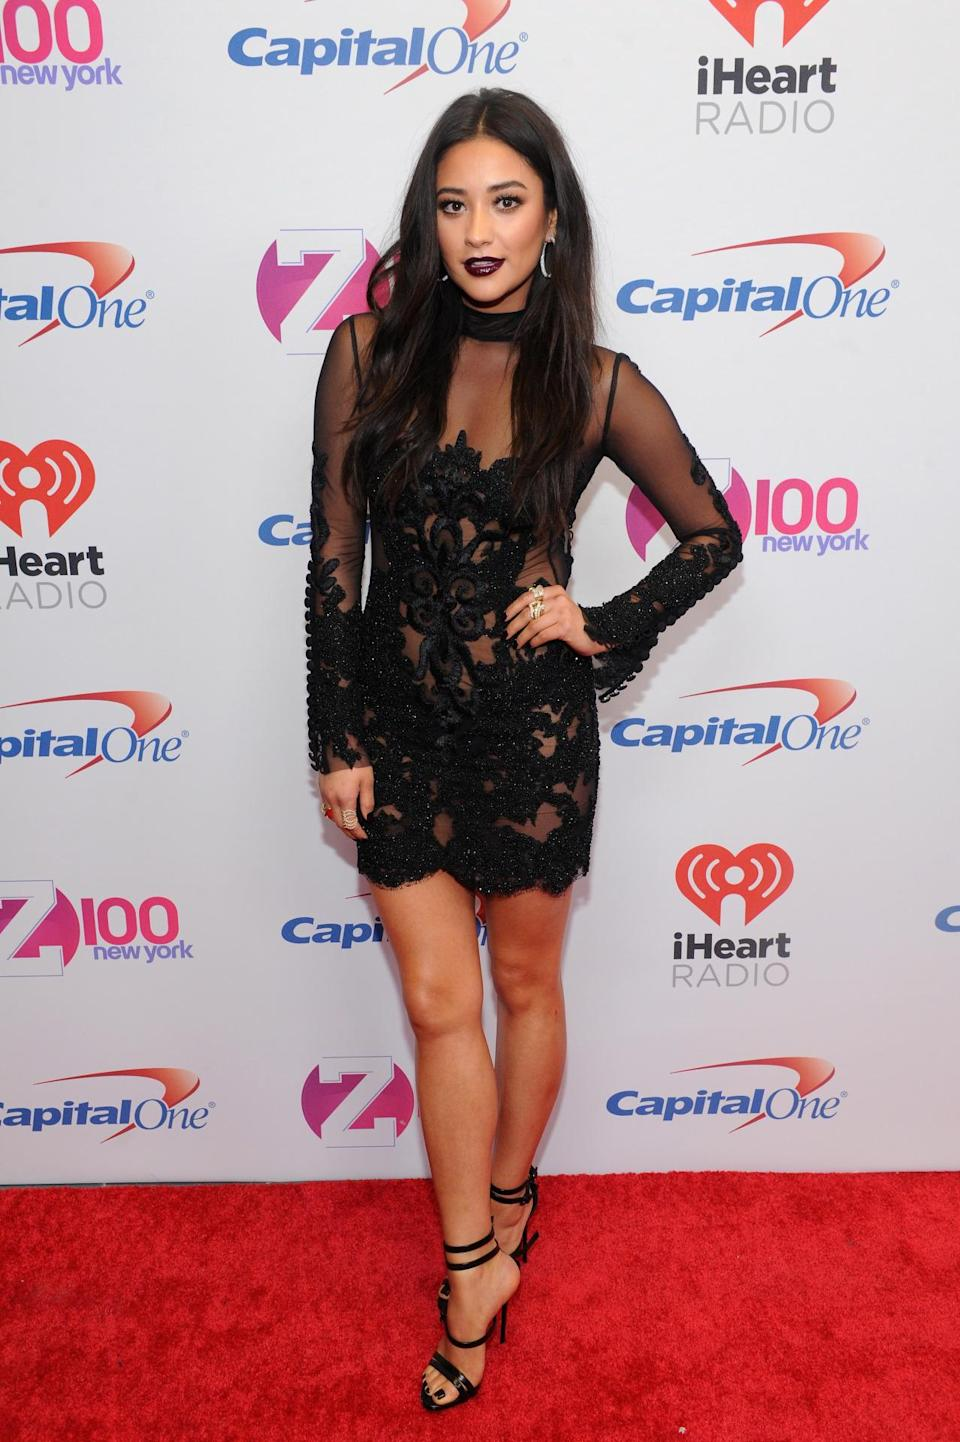 <p>It doesn't look like the sheer dress trend is going away anytime soon! Shay Mitchell offered her take on the style in this Oglia Loro Couture dress, strappy Giuseppe Zanotti sandals and a deep plum lippie.</p>